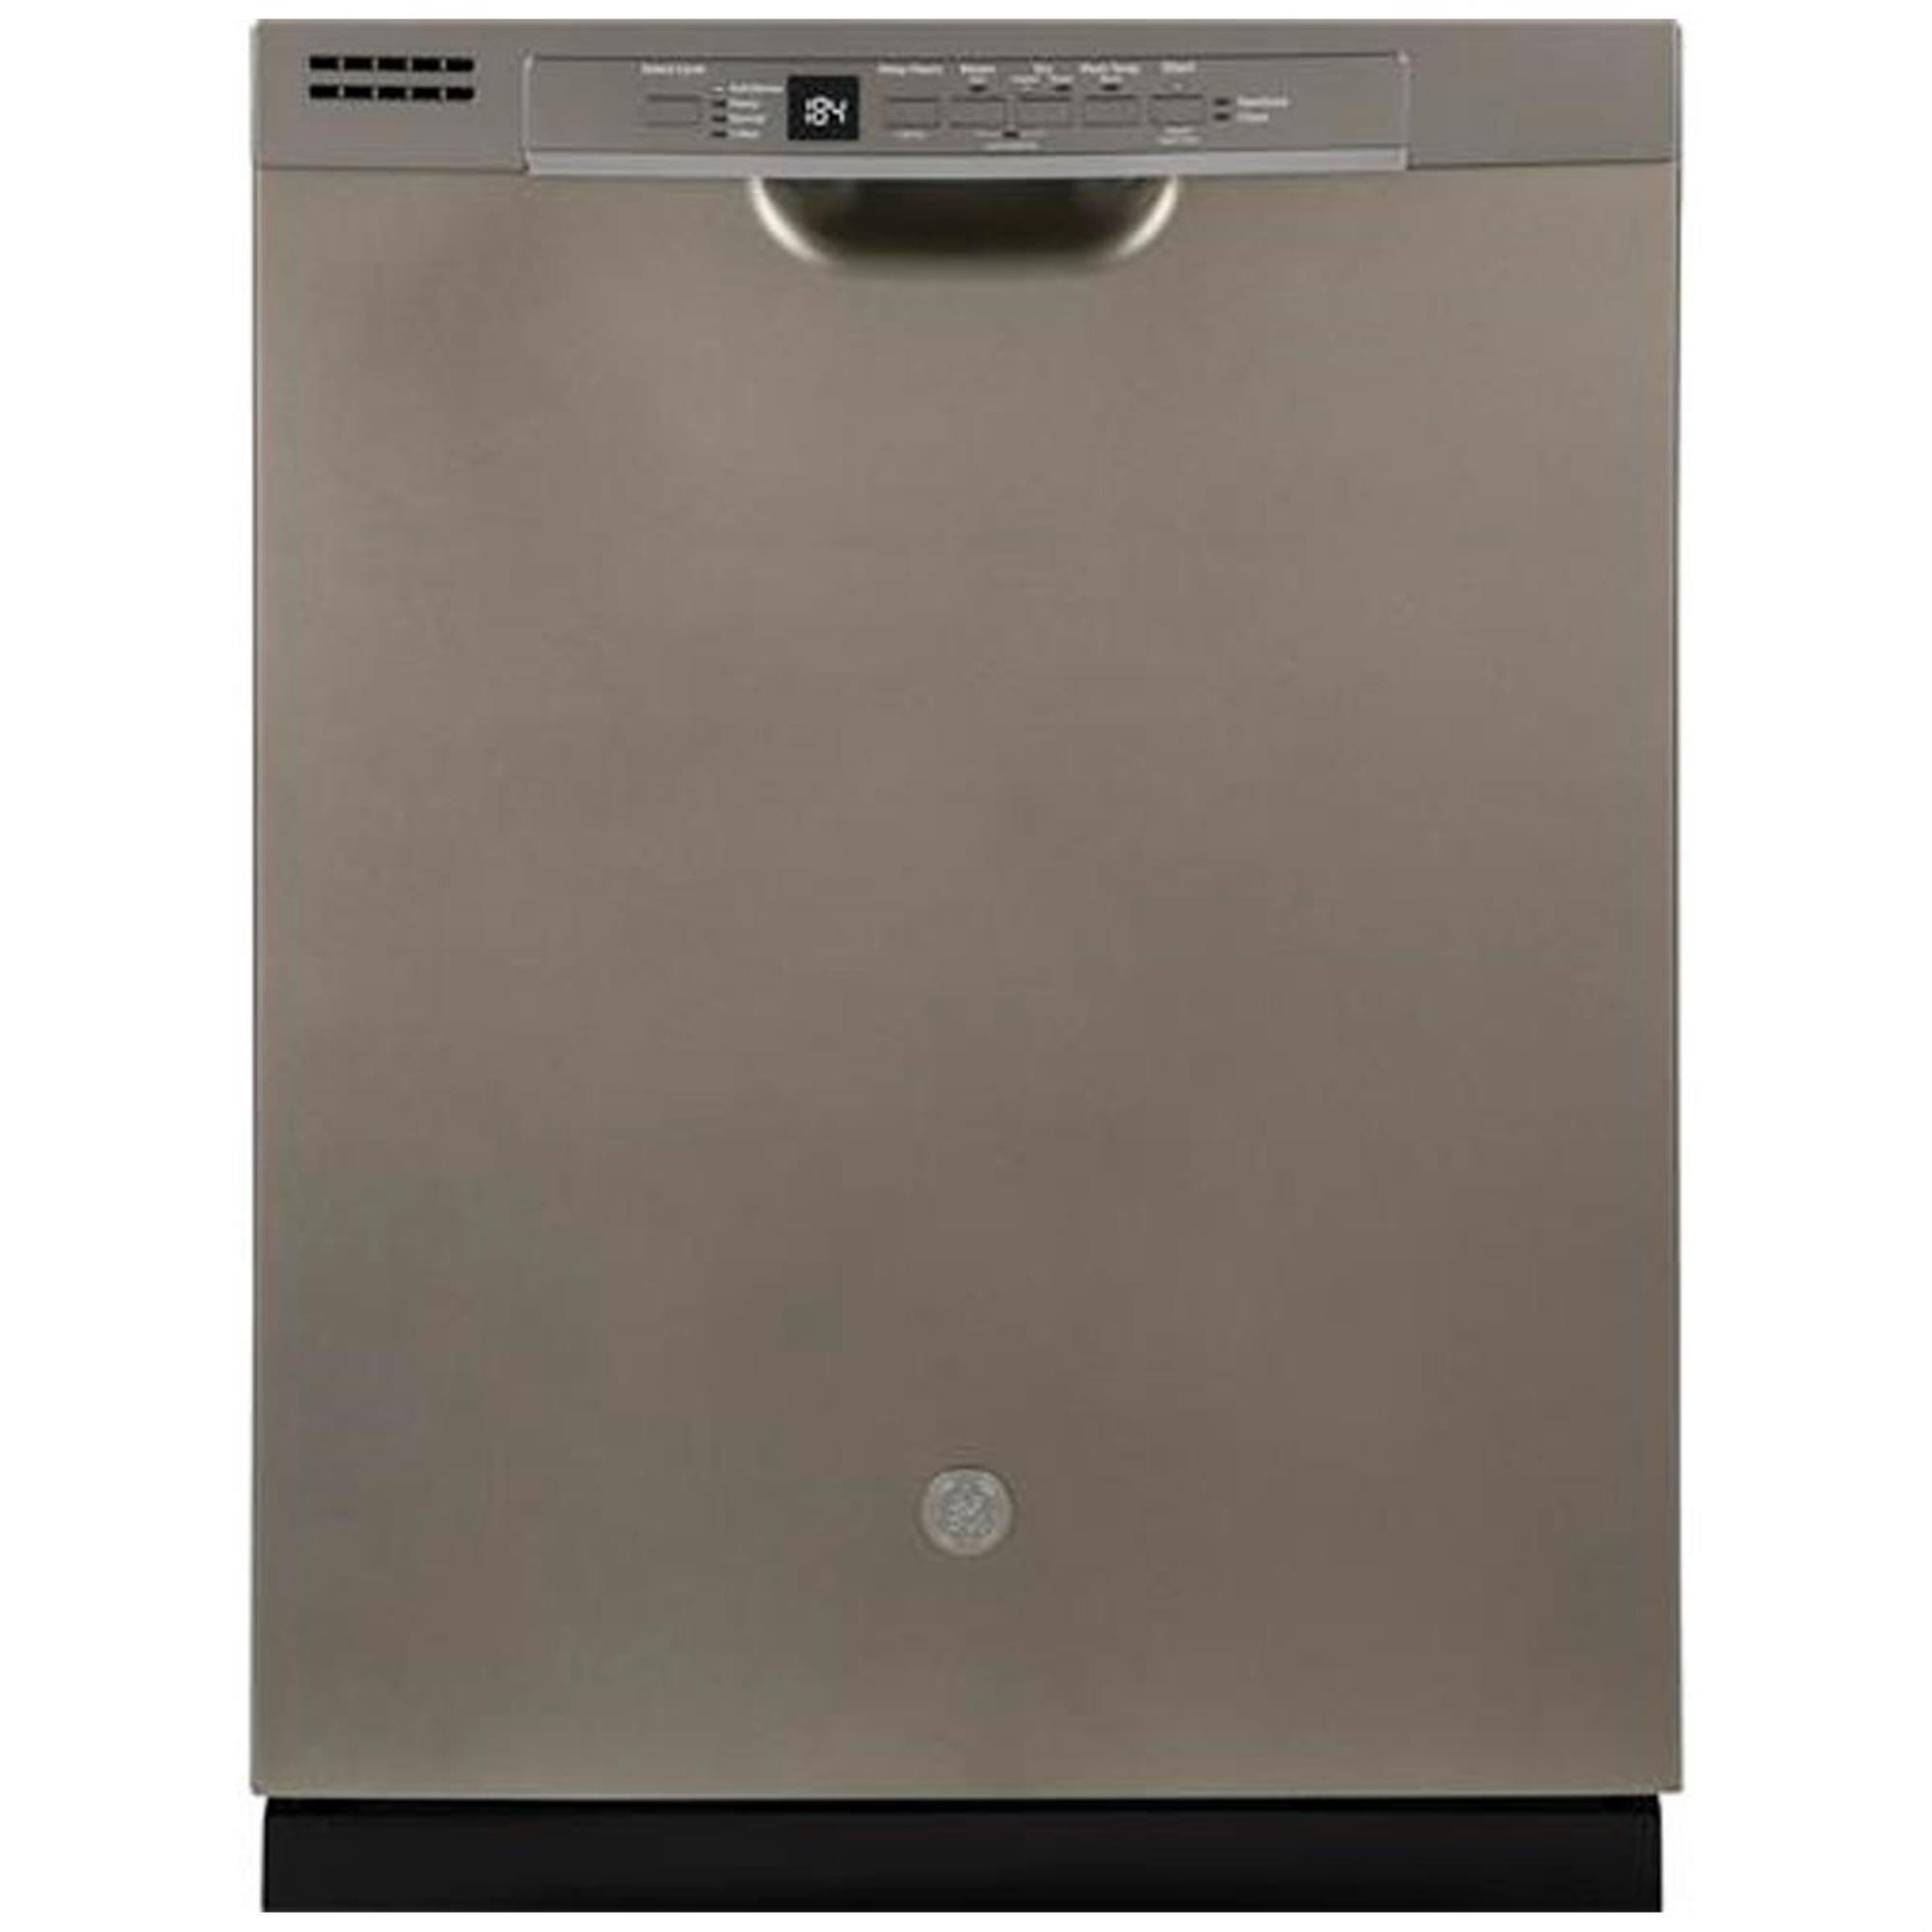 Ge Quiet Power 3 Dishwasher Handbook Ge Appliances Built In Dishwasher with Front Controls and Of Ge Quiet Power 3 Dishwasher Handbook